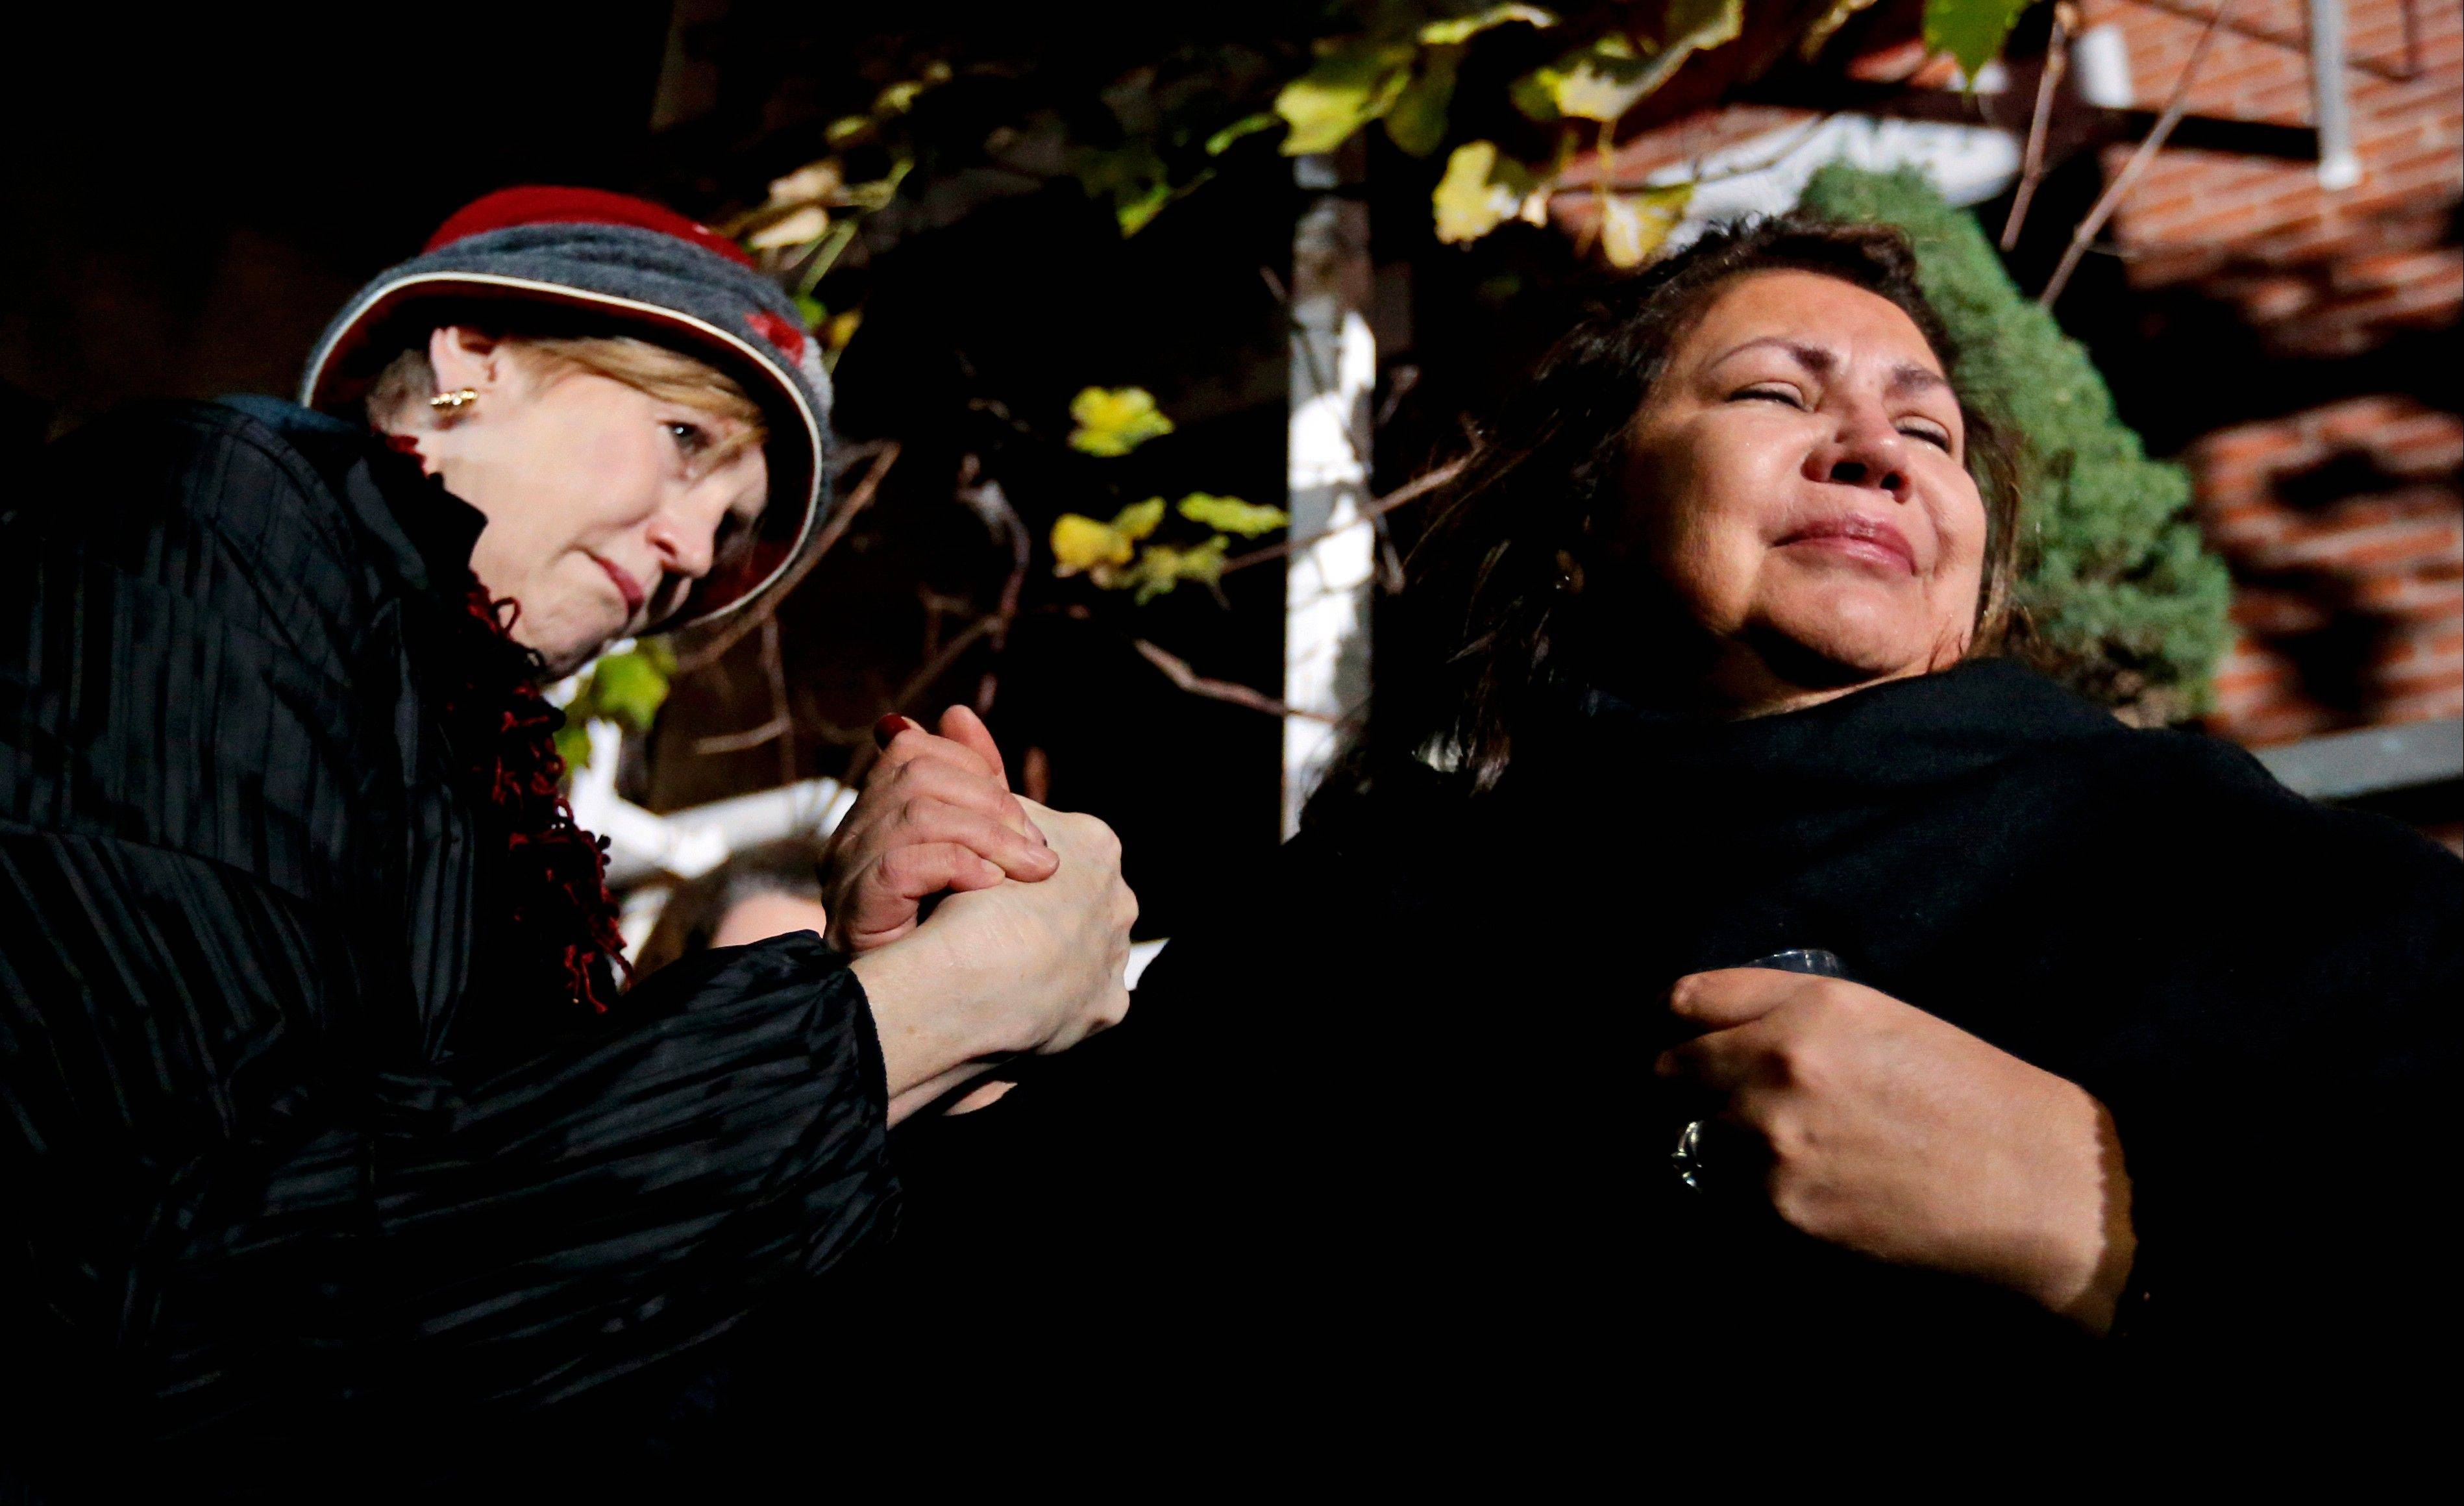 Margaret O'Connor, left, consoles chef Priscila Satkoff during a candlelight memorial Tuesday for chef Charlie Trotter outside Trotter's former restaurant.